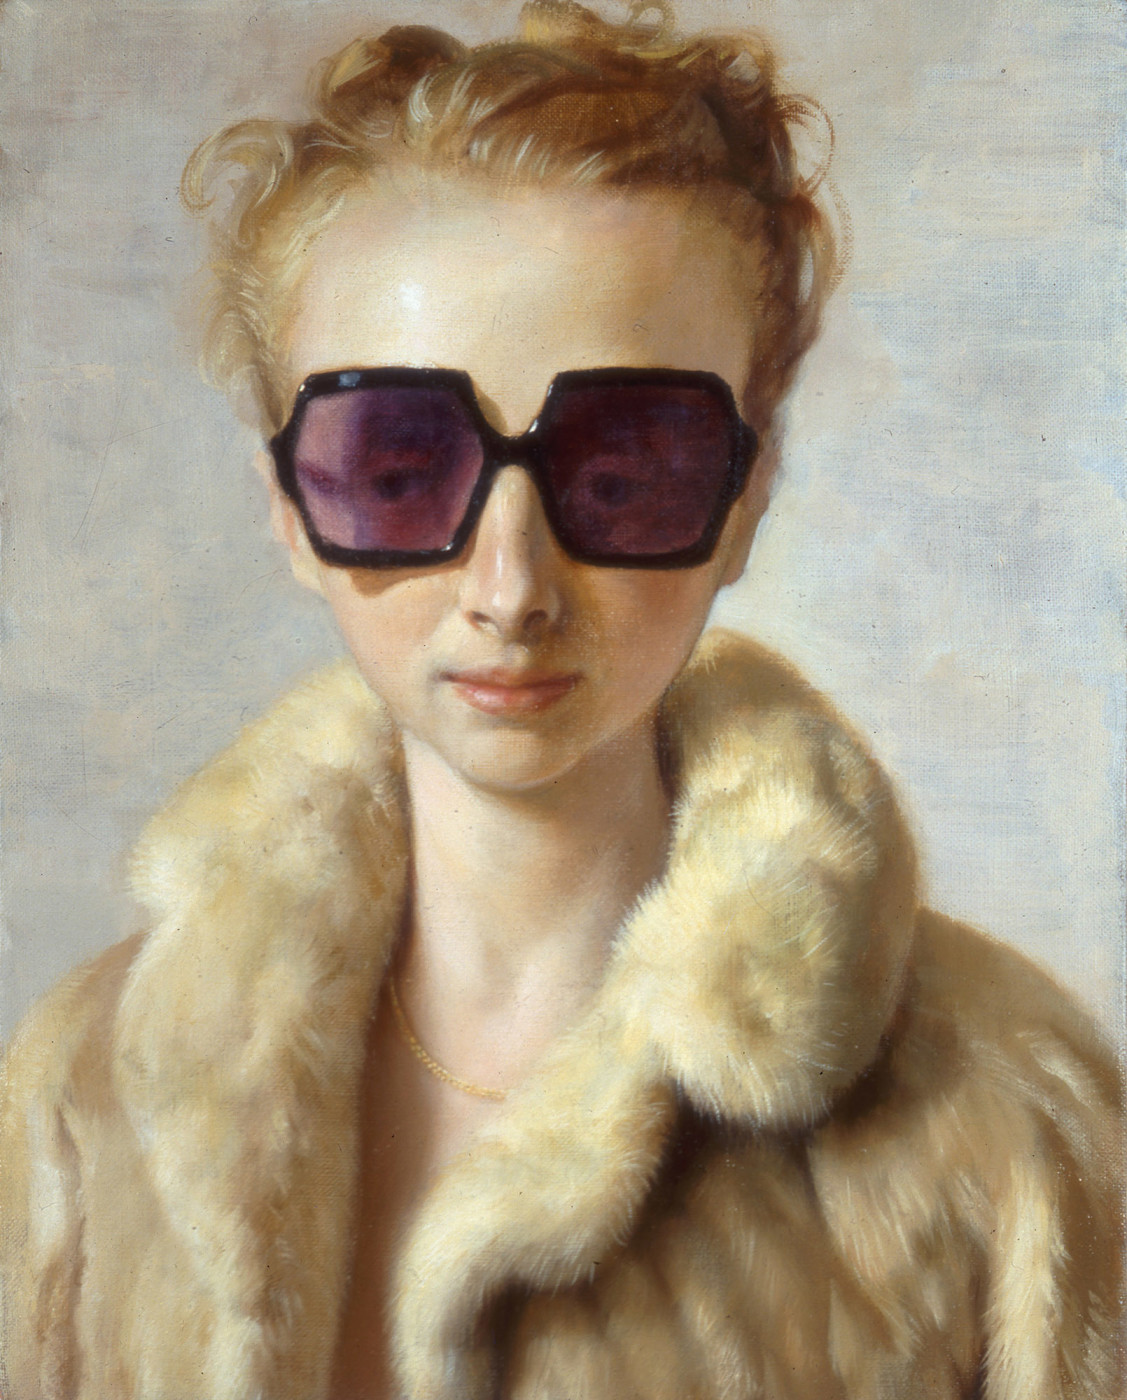 "<div class=""title""><em>Rachel in Fur</em>, 2002</div><div class=""medium"">oil on canvas</div><div class=""dimensions"">50.8 x 40.64 cm<br />20 x 16 in.</div>"